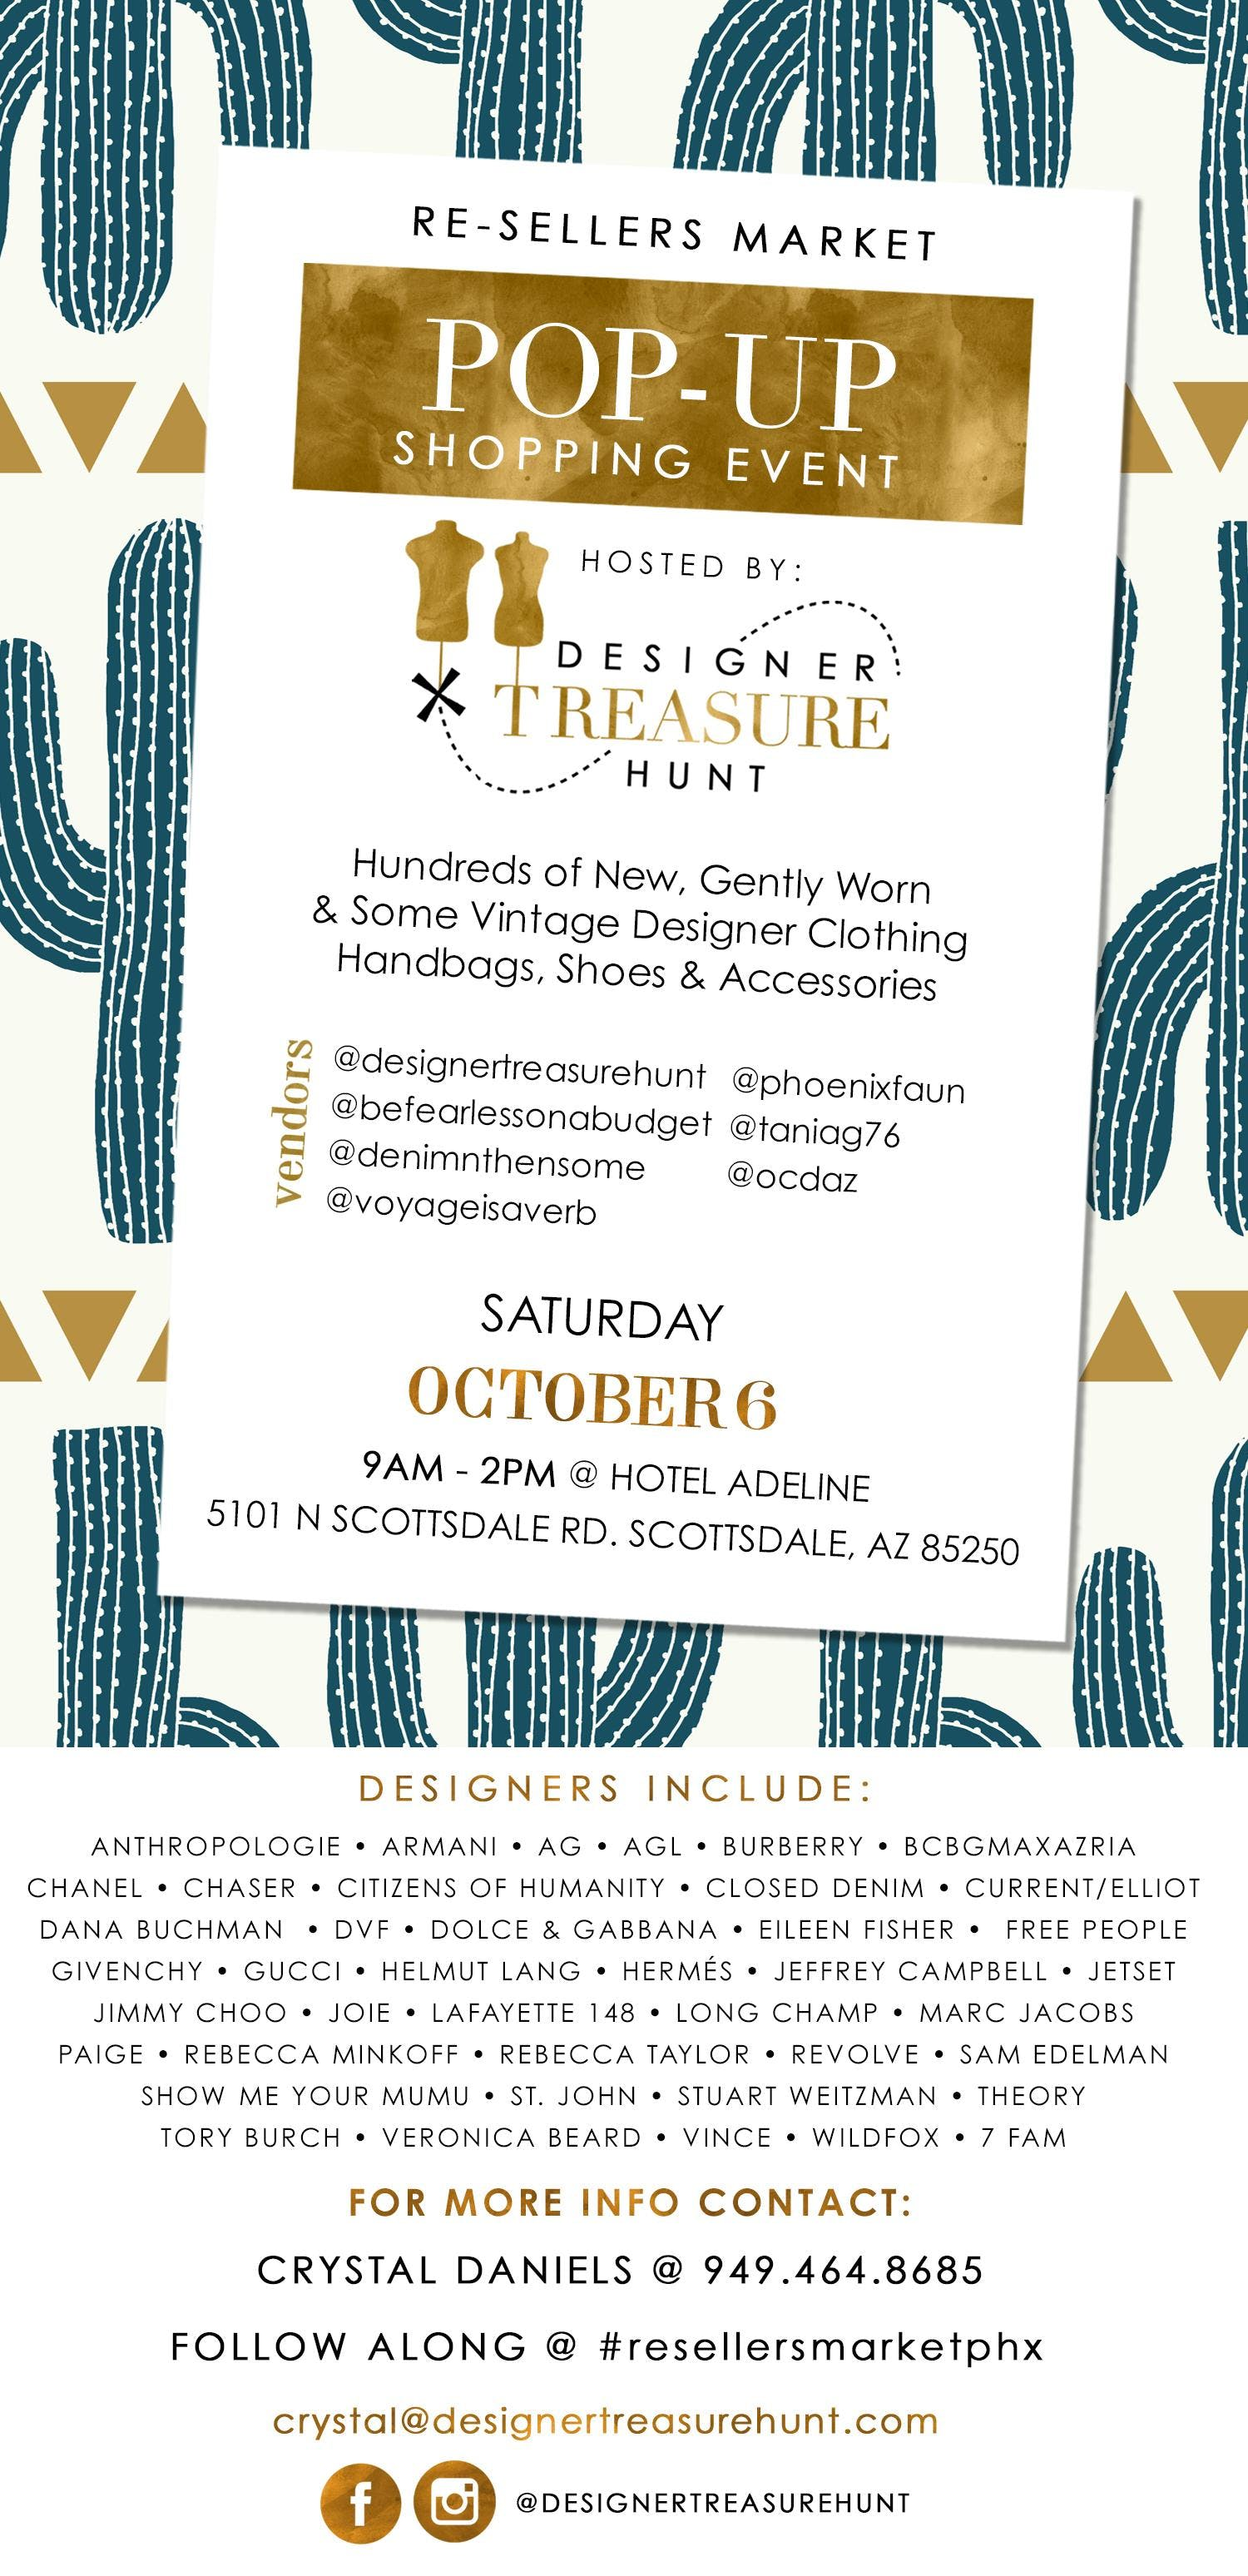 Re-seller's Market: A Pop-Up Fashion Resale Shopping Event!